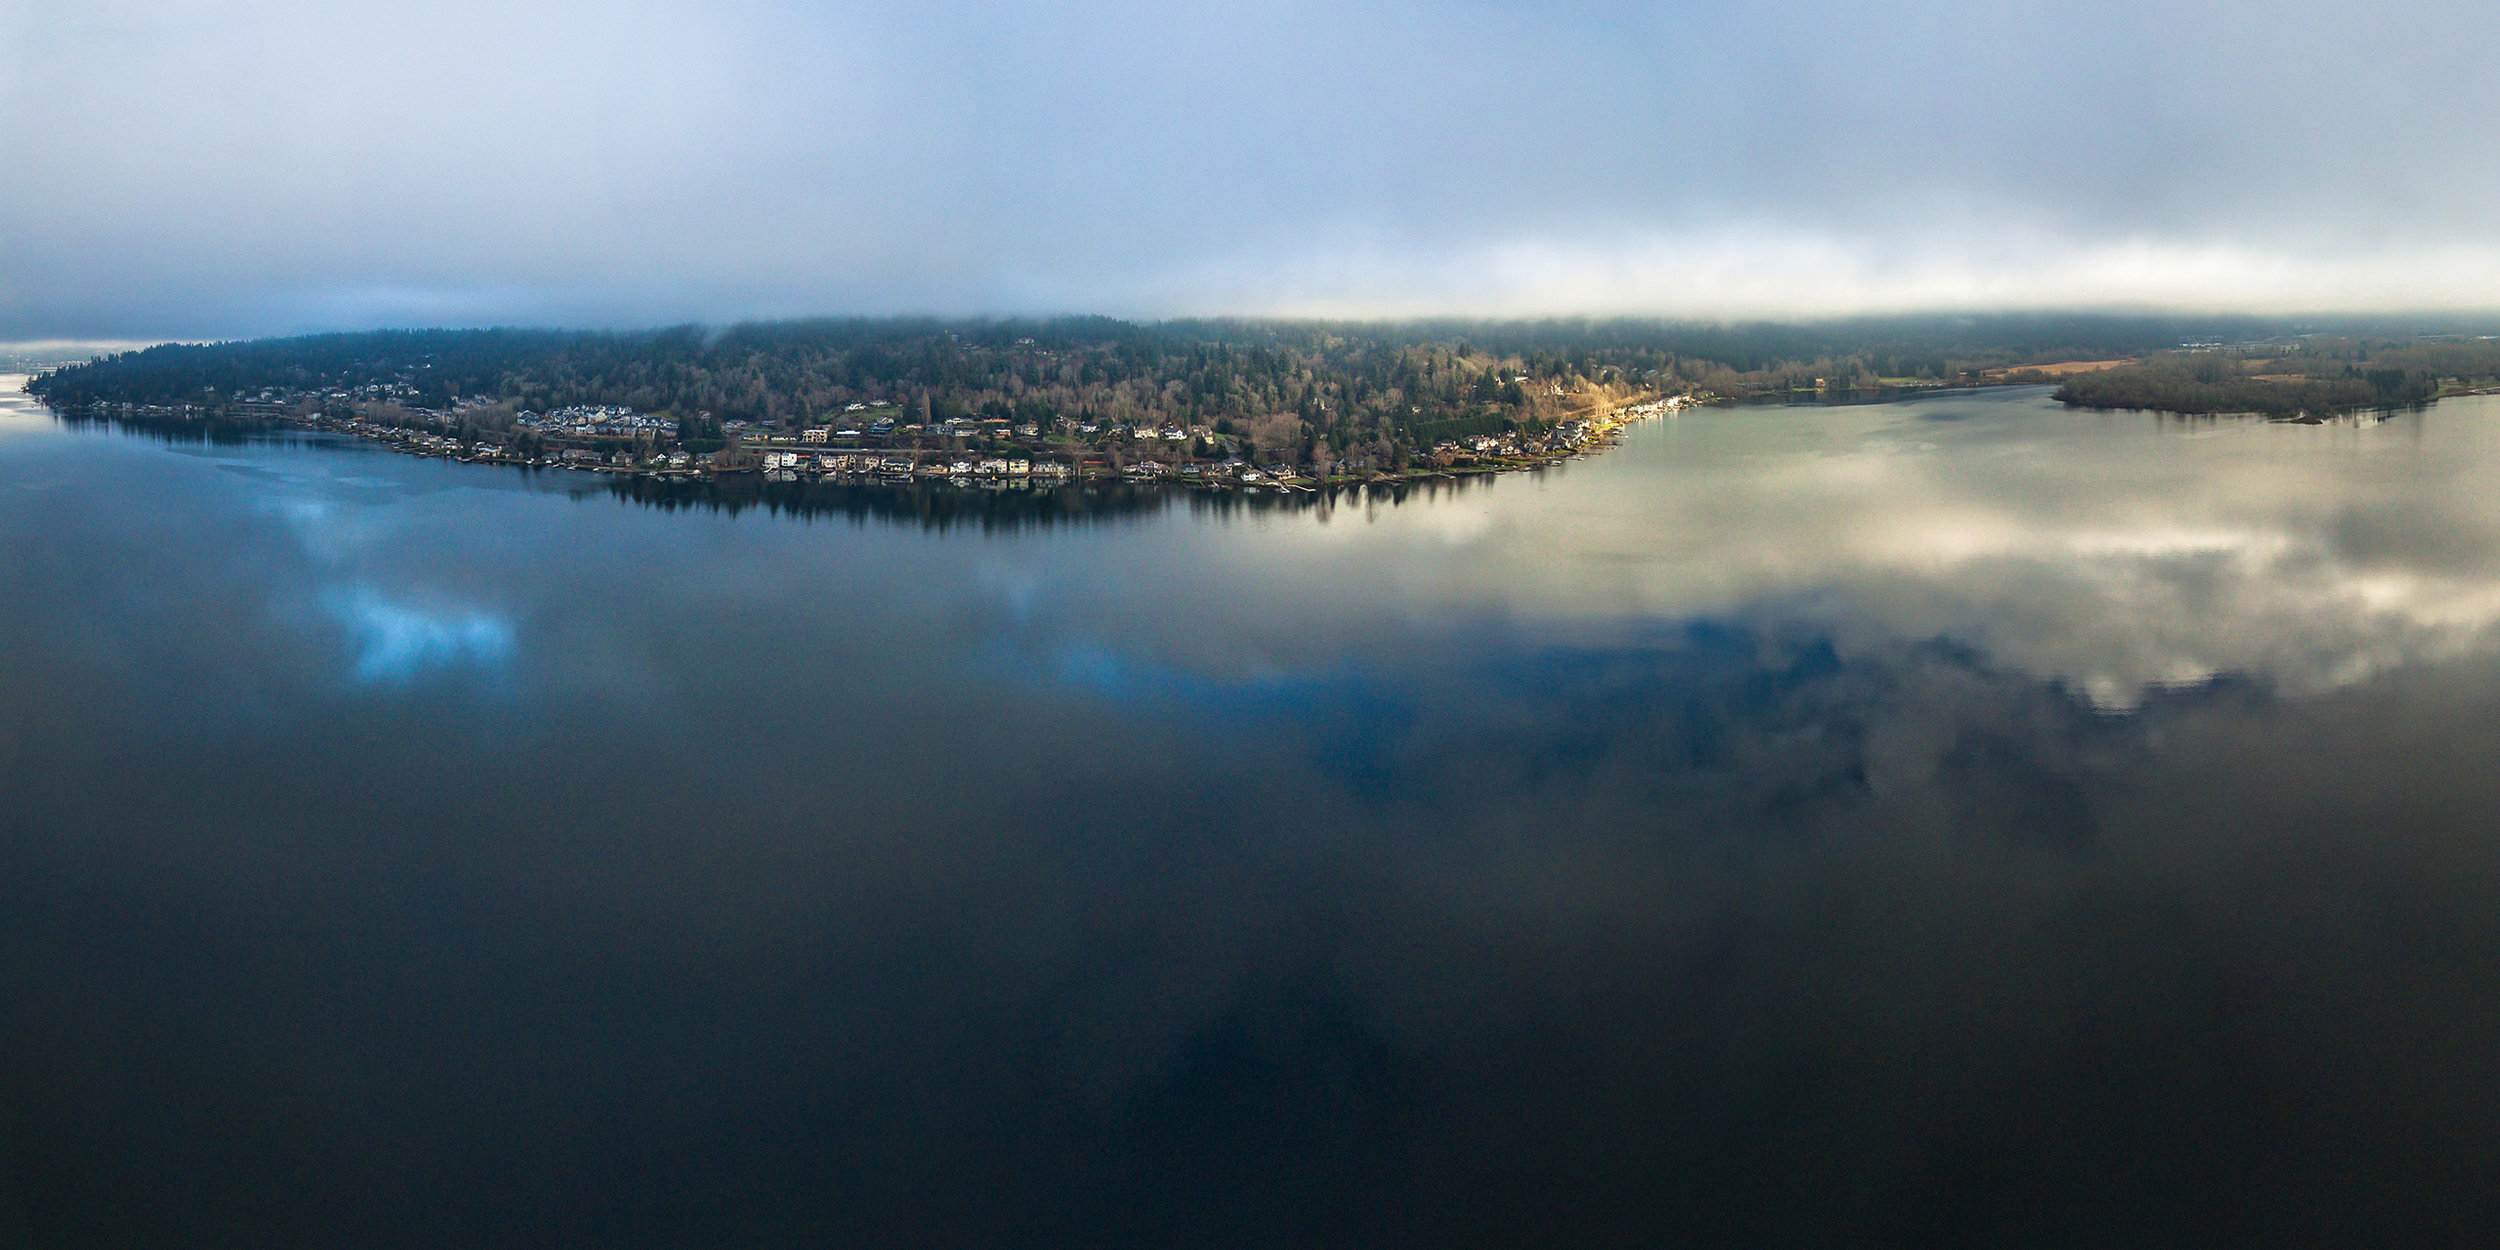 Eric_Krebs_Aerial_2017_Lake_Sammamish_Reflection_2560px.jpg